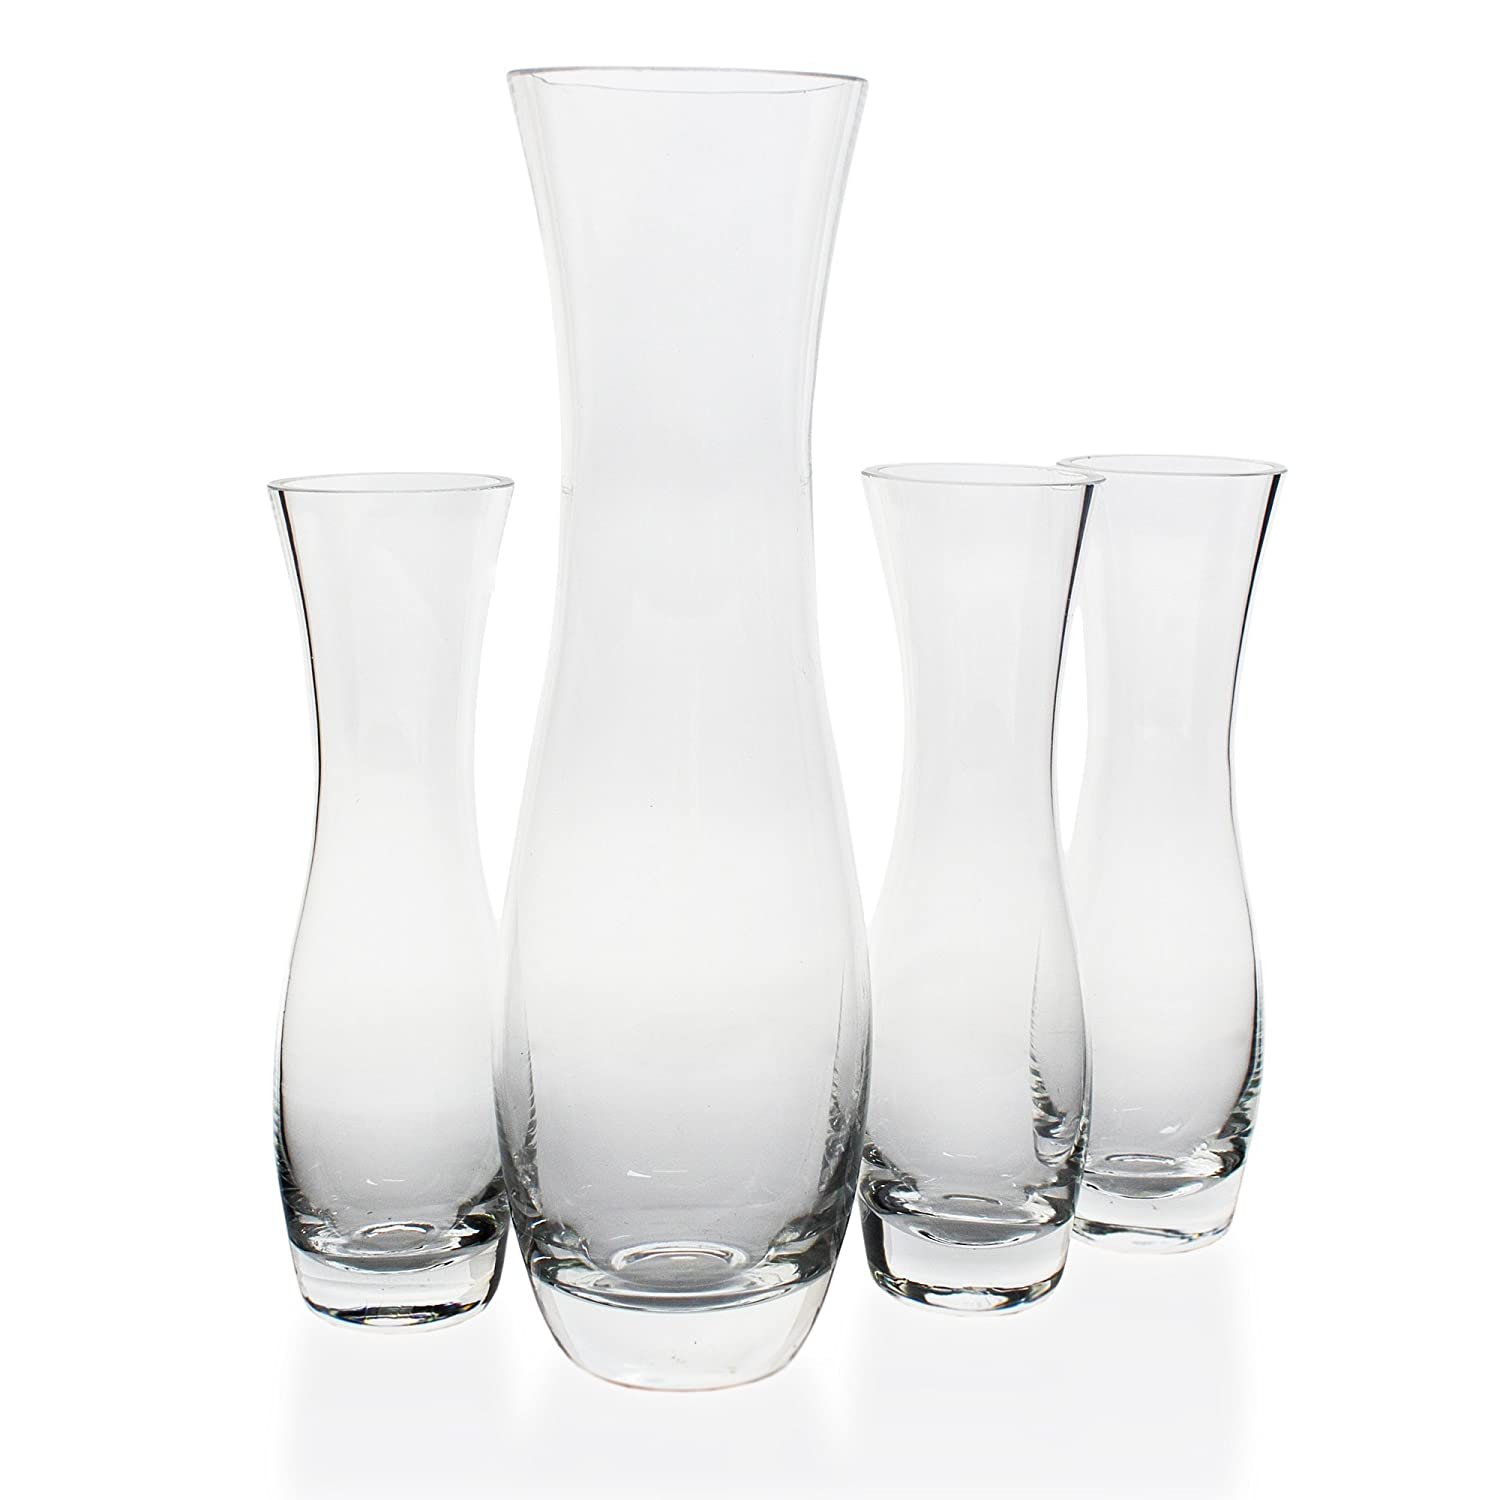 Cathy's Concepts Sand Ceremony 4-Piece Vase Set Cathys Concepts PS3909